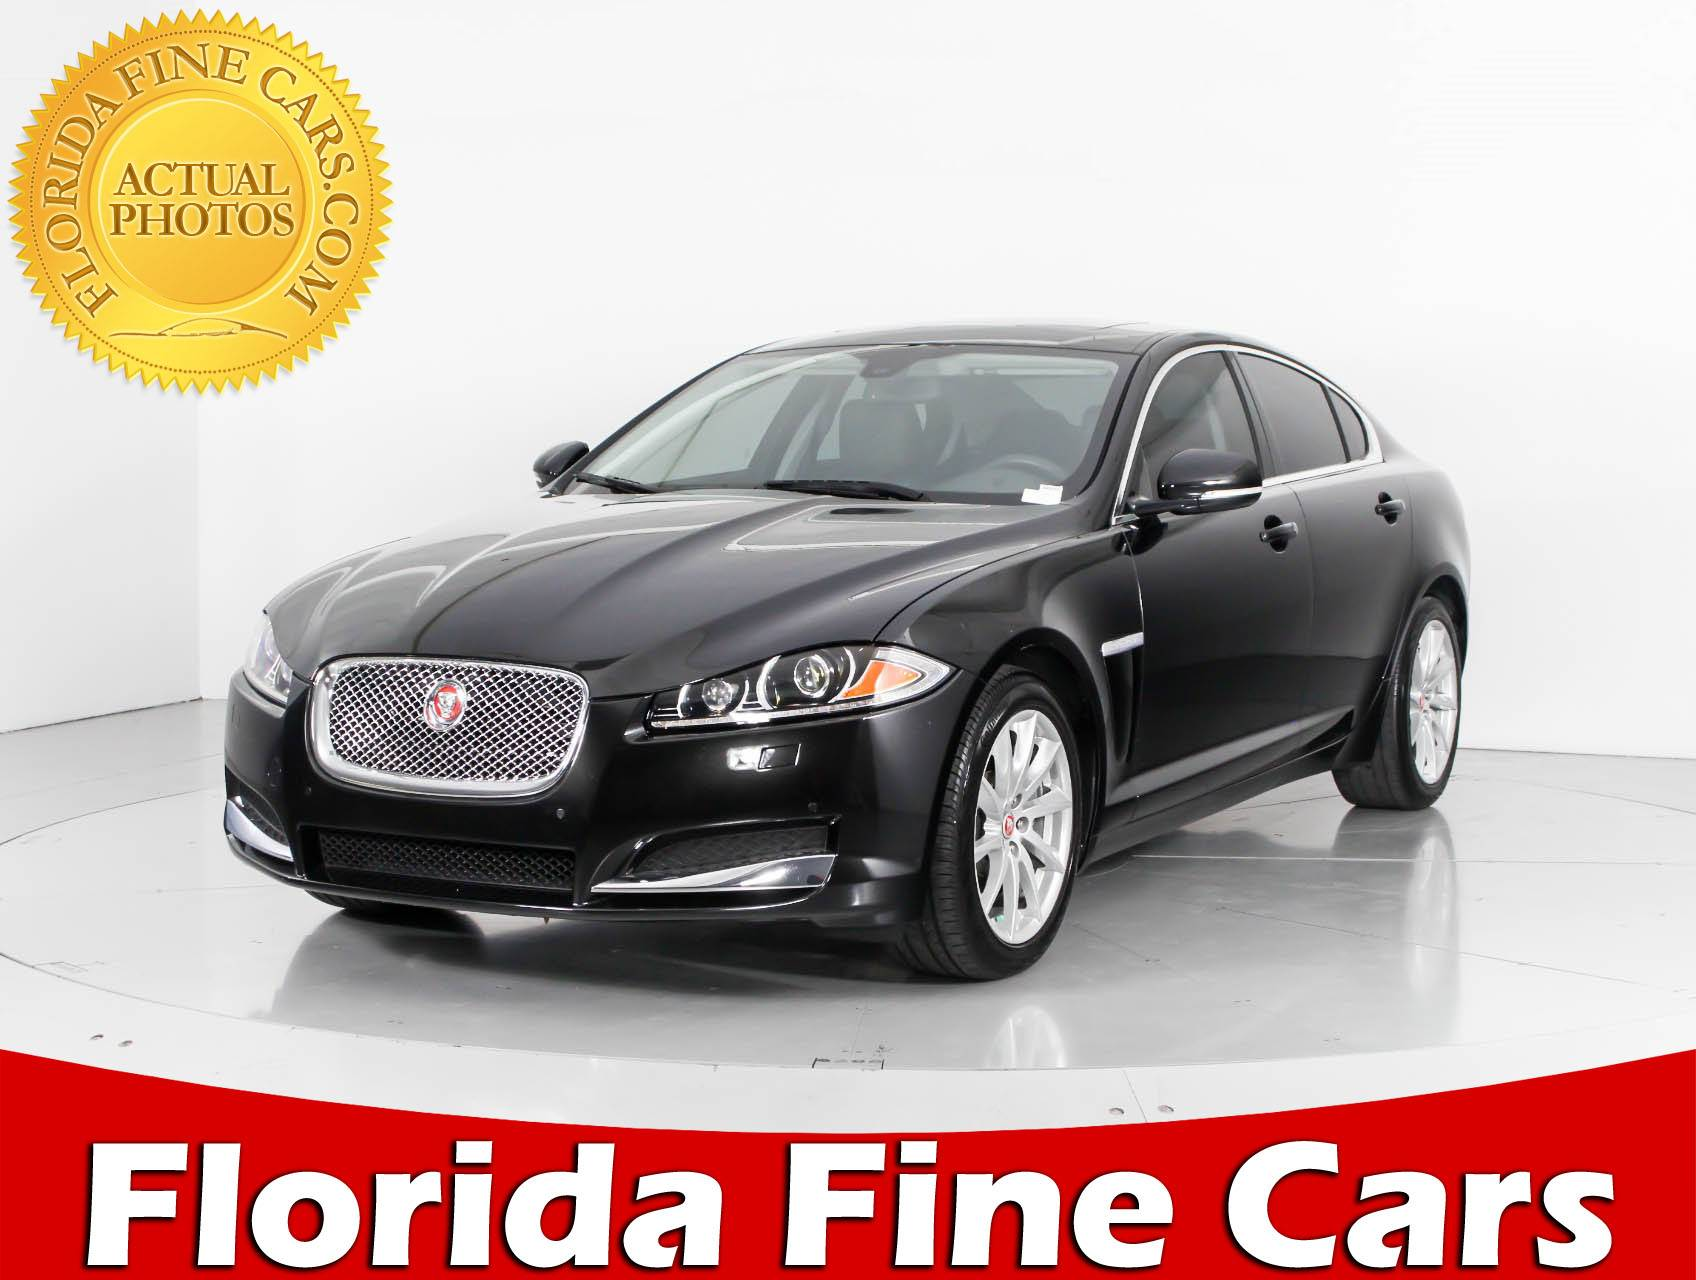 Used 2014 JAGUAR XF Sedan For Sale In HOLLYWOOD, FL | 95279 | Florida Fine  Cars